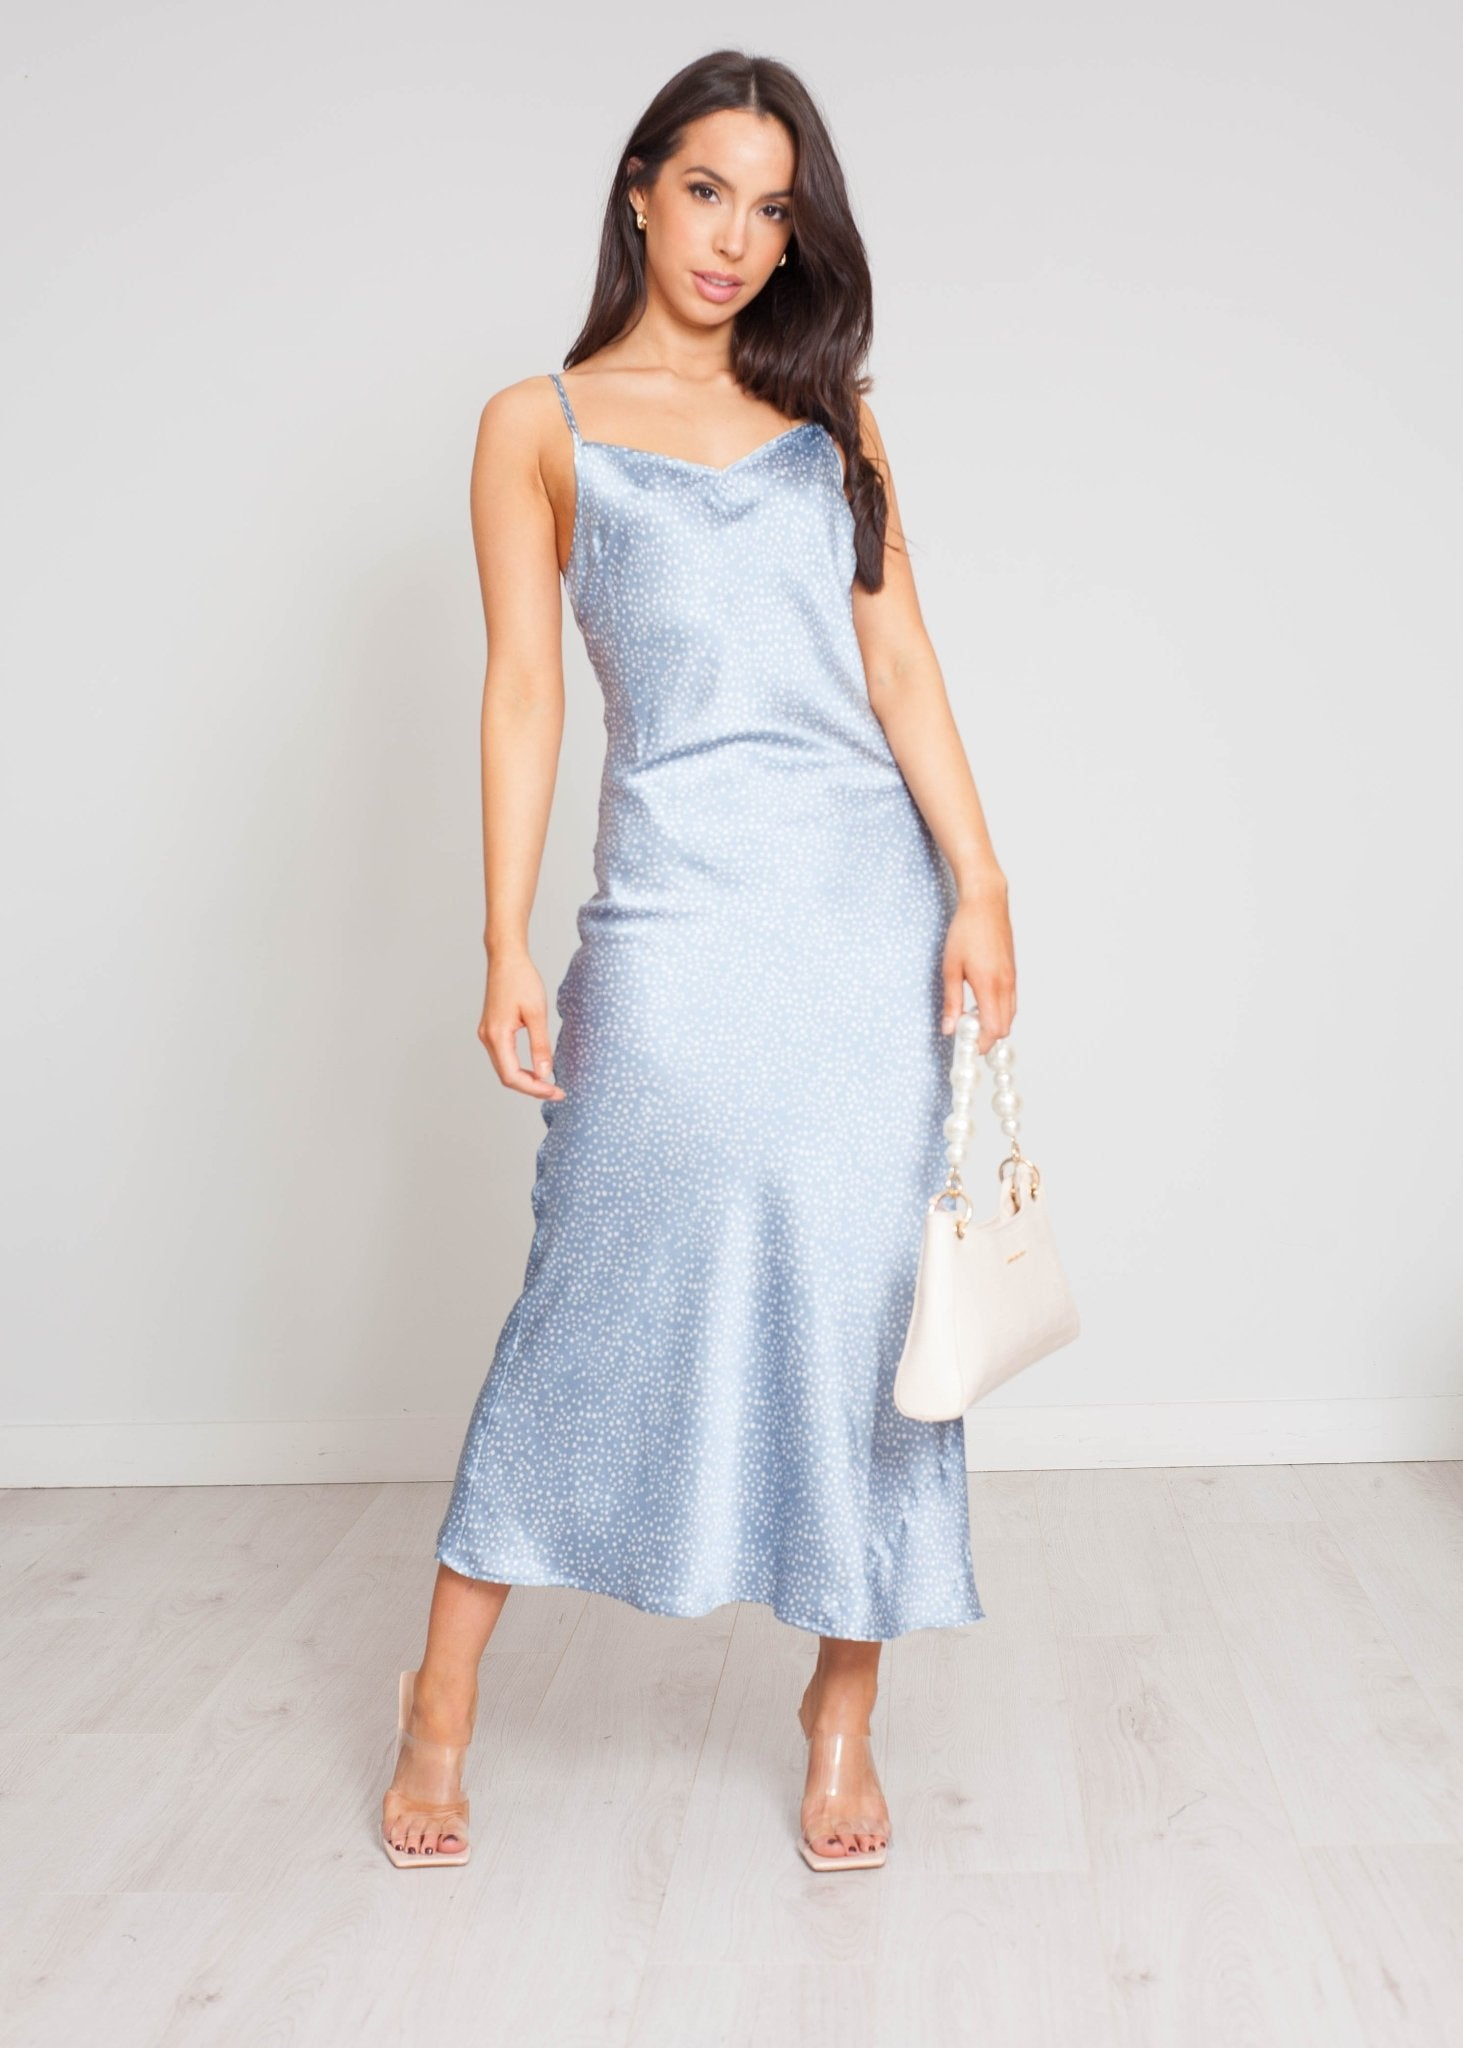 Freya Star Print Slip Dress In Blue - The Walk in Wardrobe